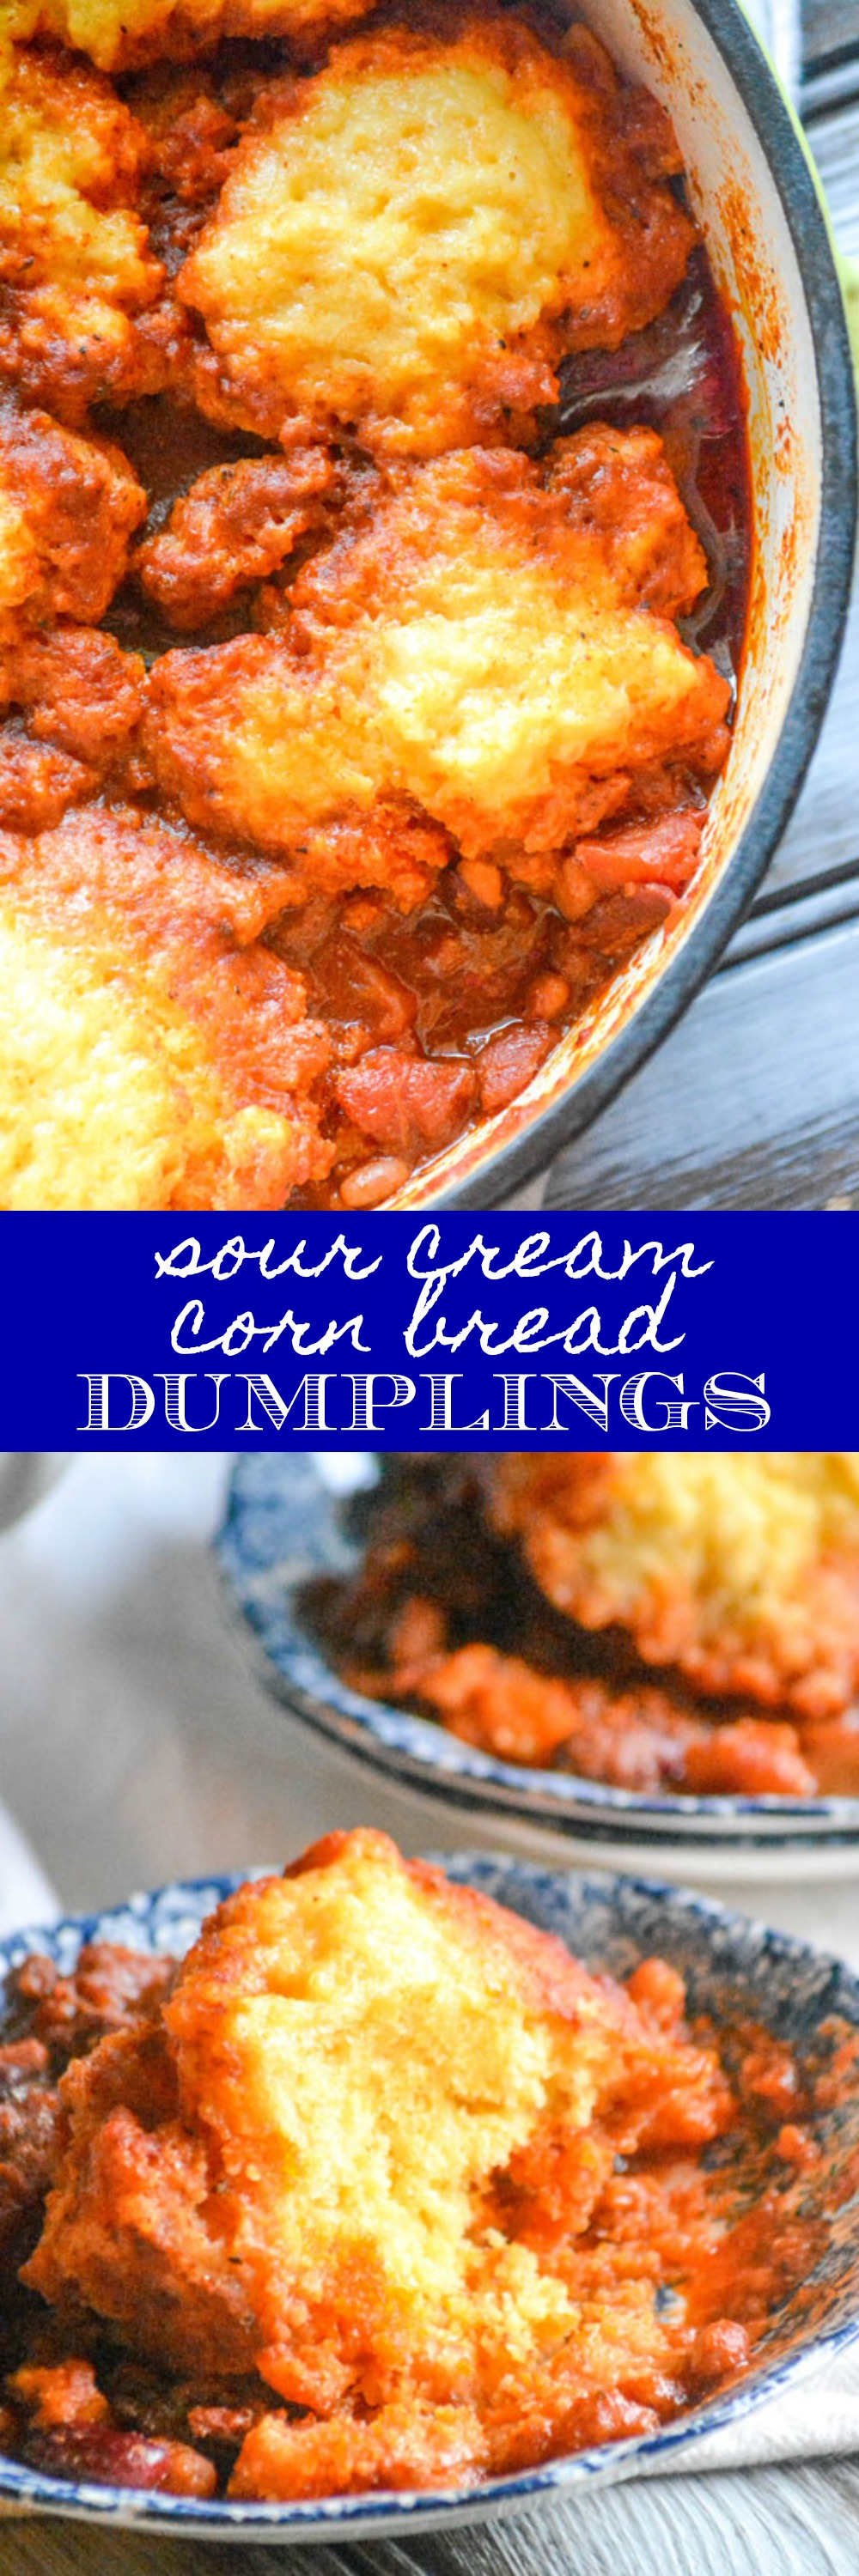 When the Winter weather comes callin', we go running straight for our biggest pot & our favorite batch of hearty chili. Obviously, no bowl of chili would be complete without a serving of cornbread. Skip the extra steps and combine the two with these yummy, savory Sour Cream Corn Bread Dumplings.